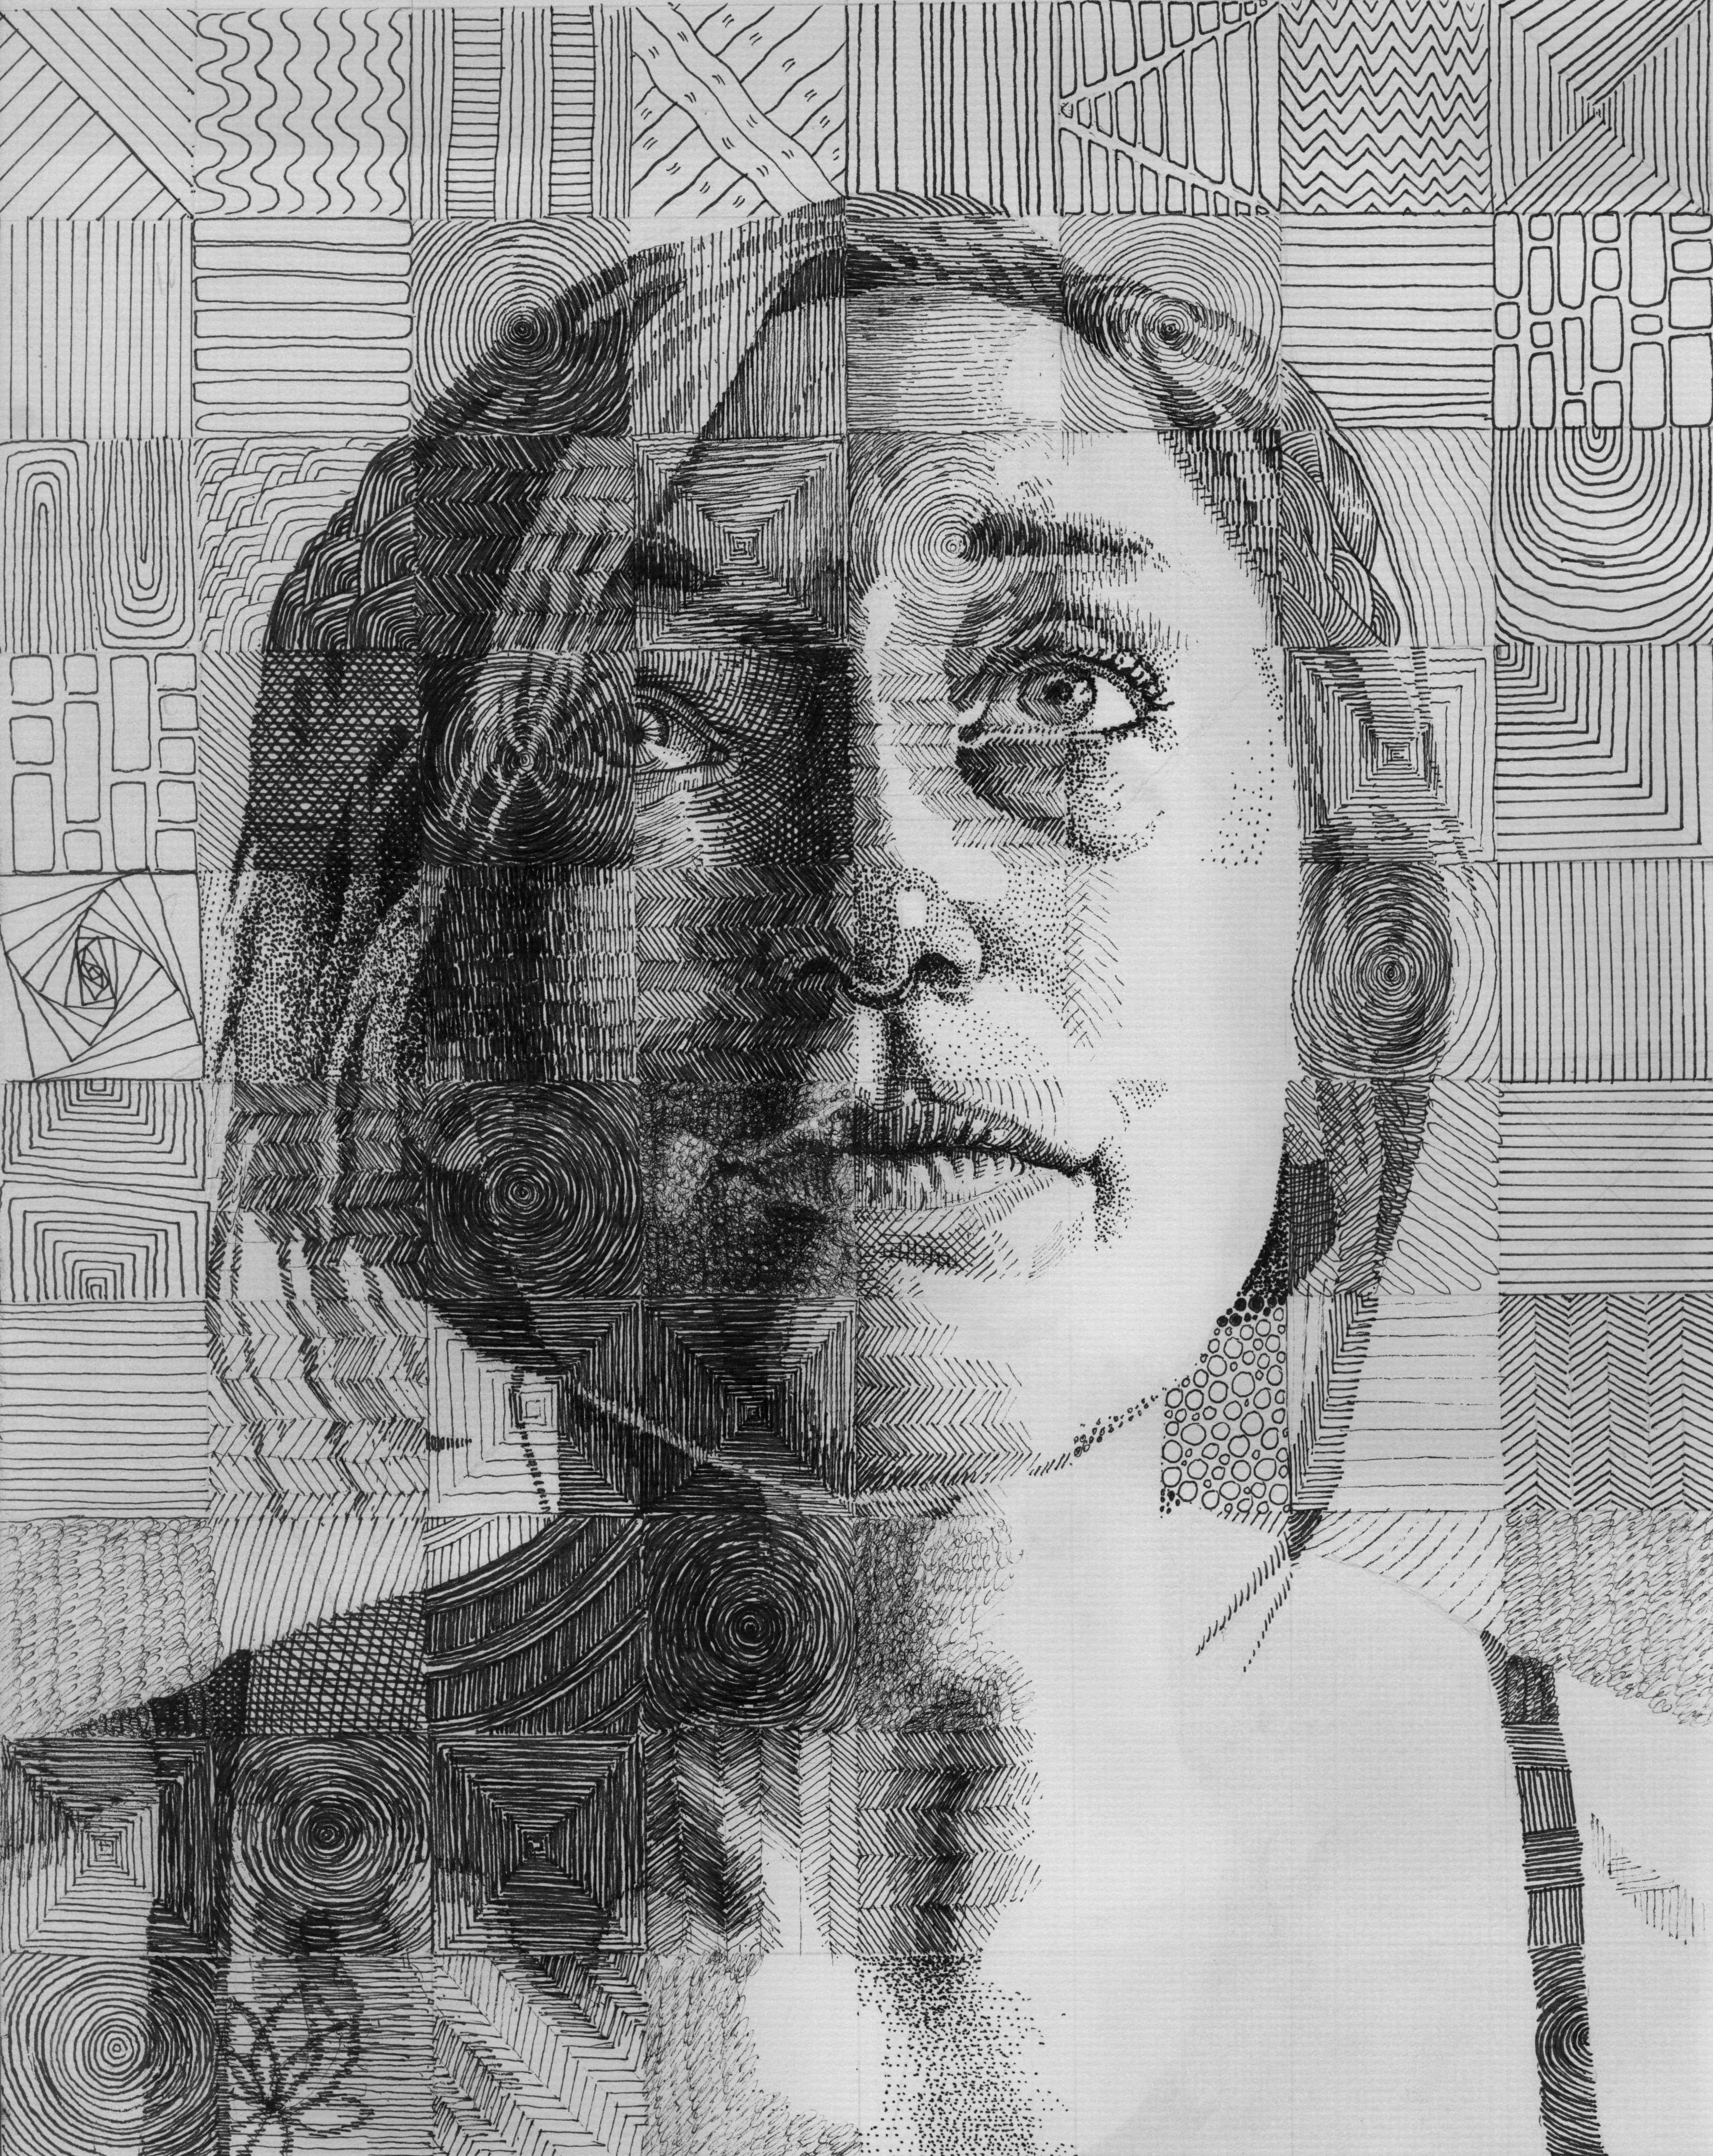 Grid Portrait I Did Of My Girlfriend With Each Square